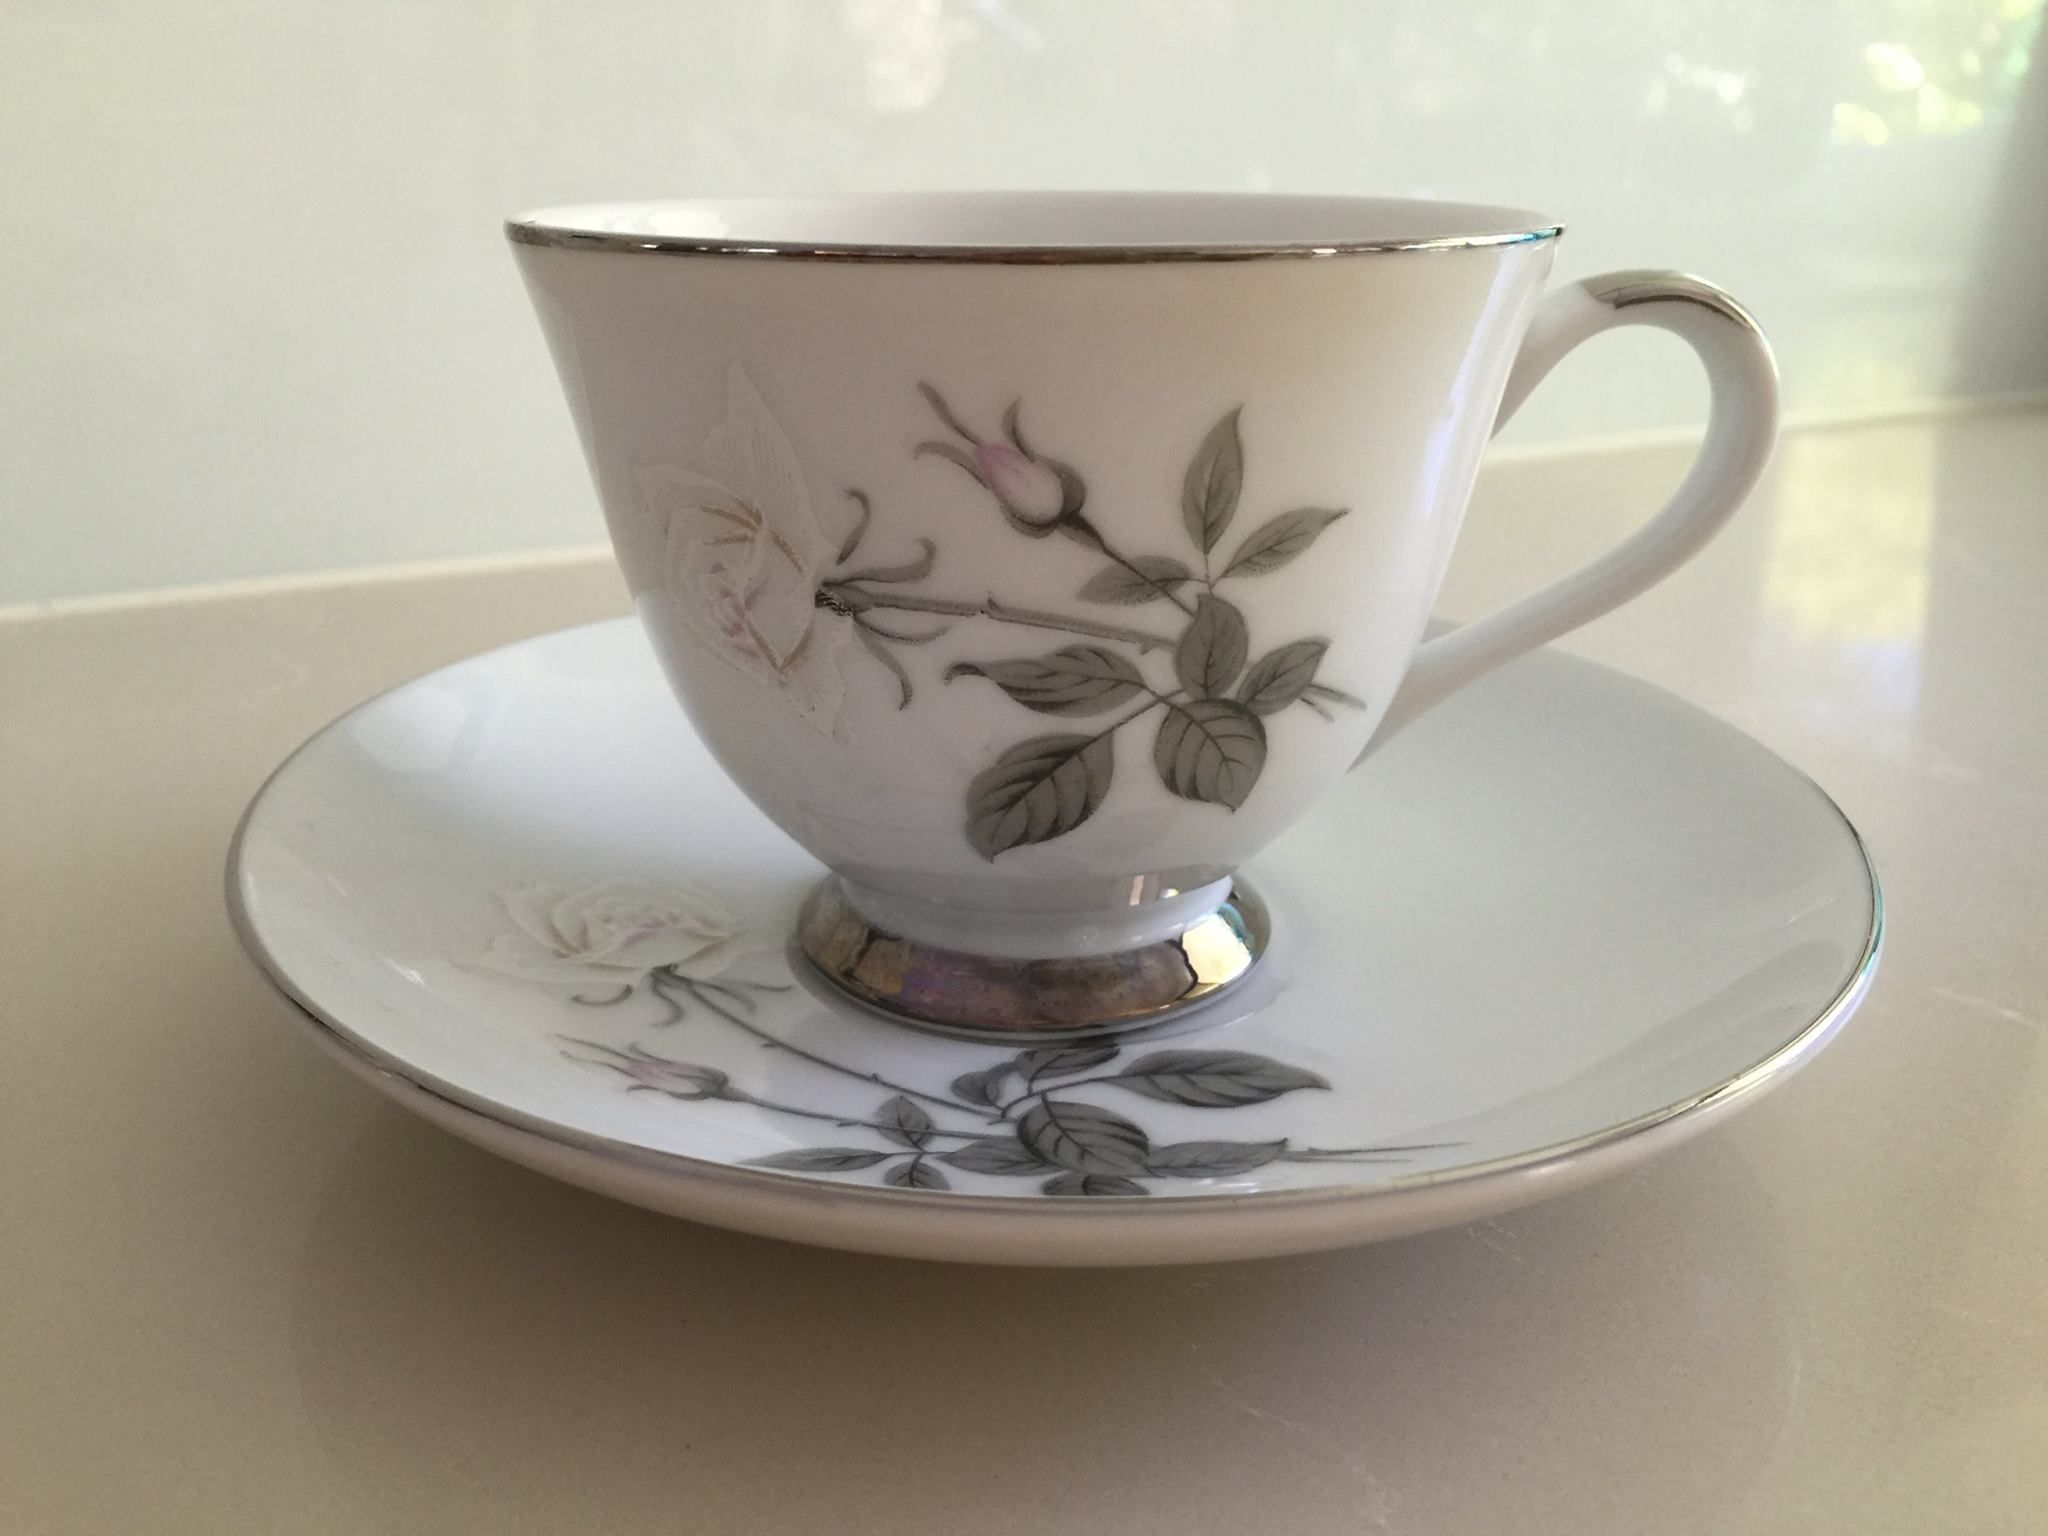 Yamato Fine China duos cup and saucer rose decoration - white & pink ...